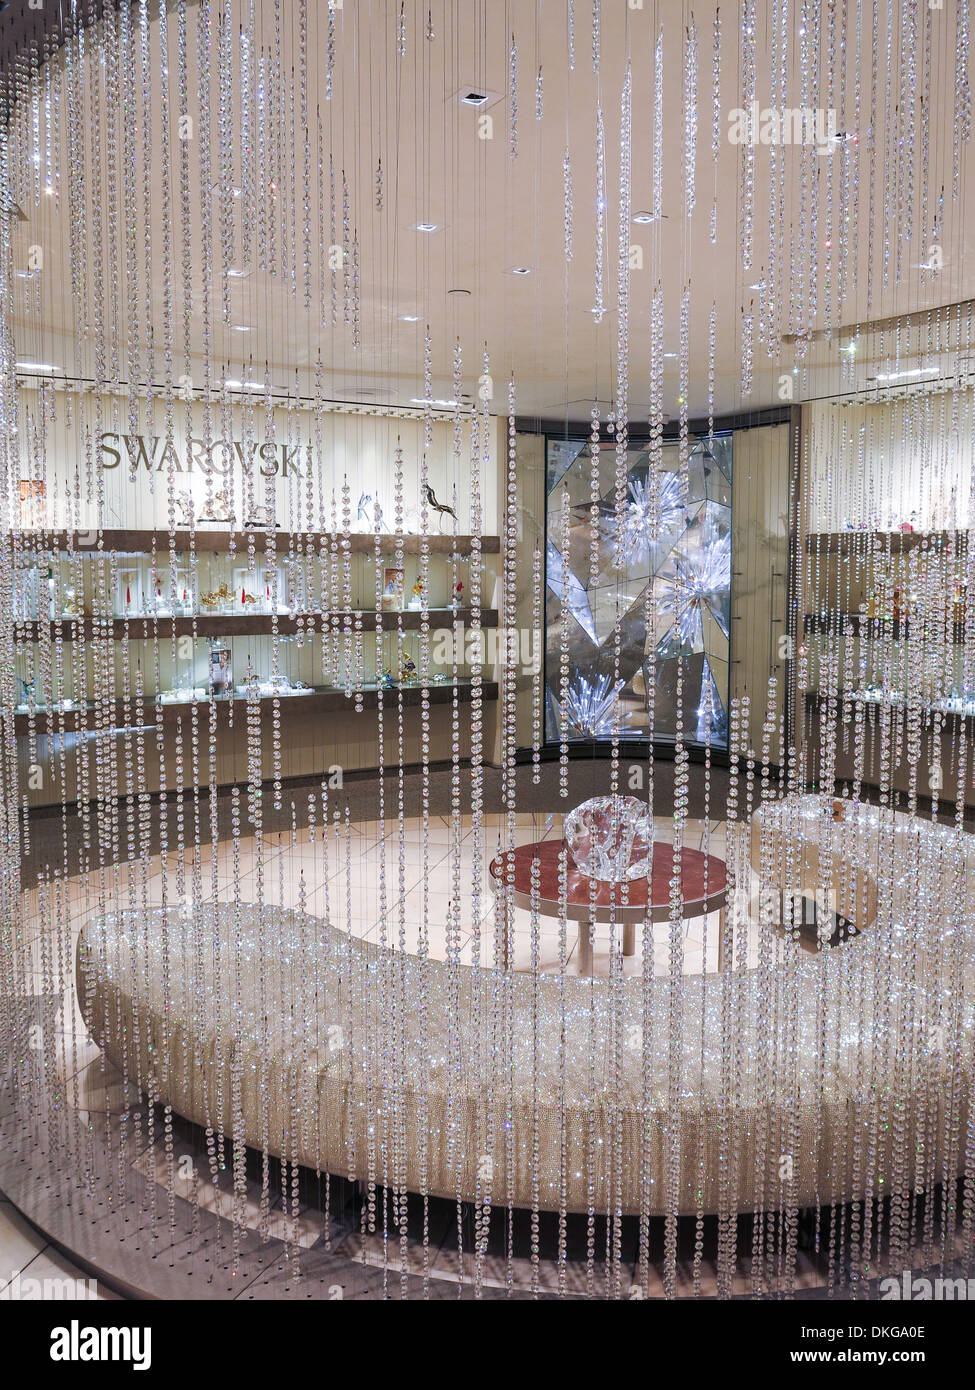 Since , founder Daniel Swarovski's mastery of crystal cutting has defined the company. His enduring passion for innovation and design has made it the world's premier jewelry and accessory brand.